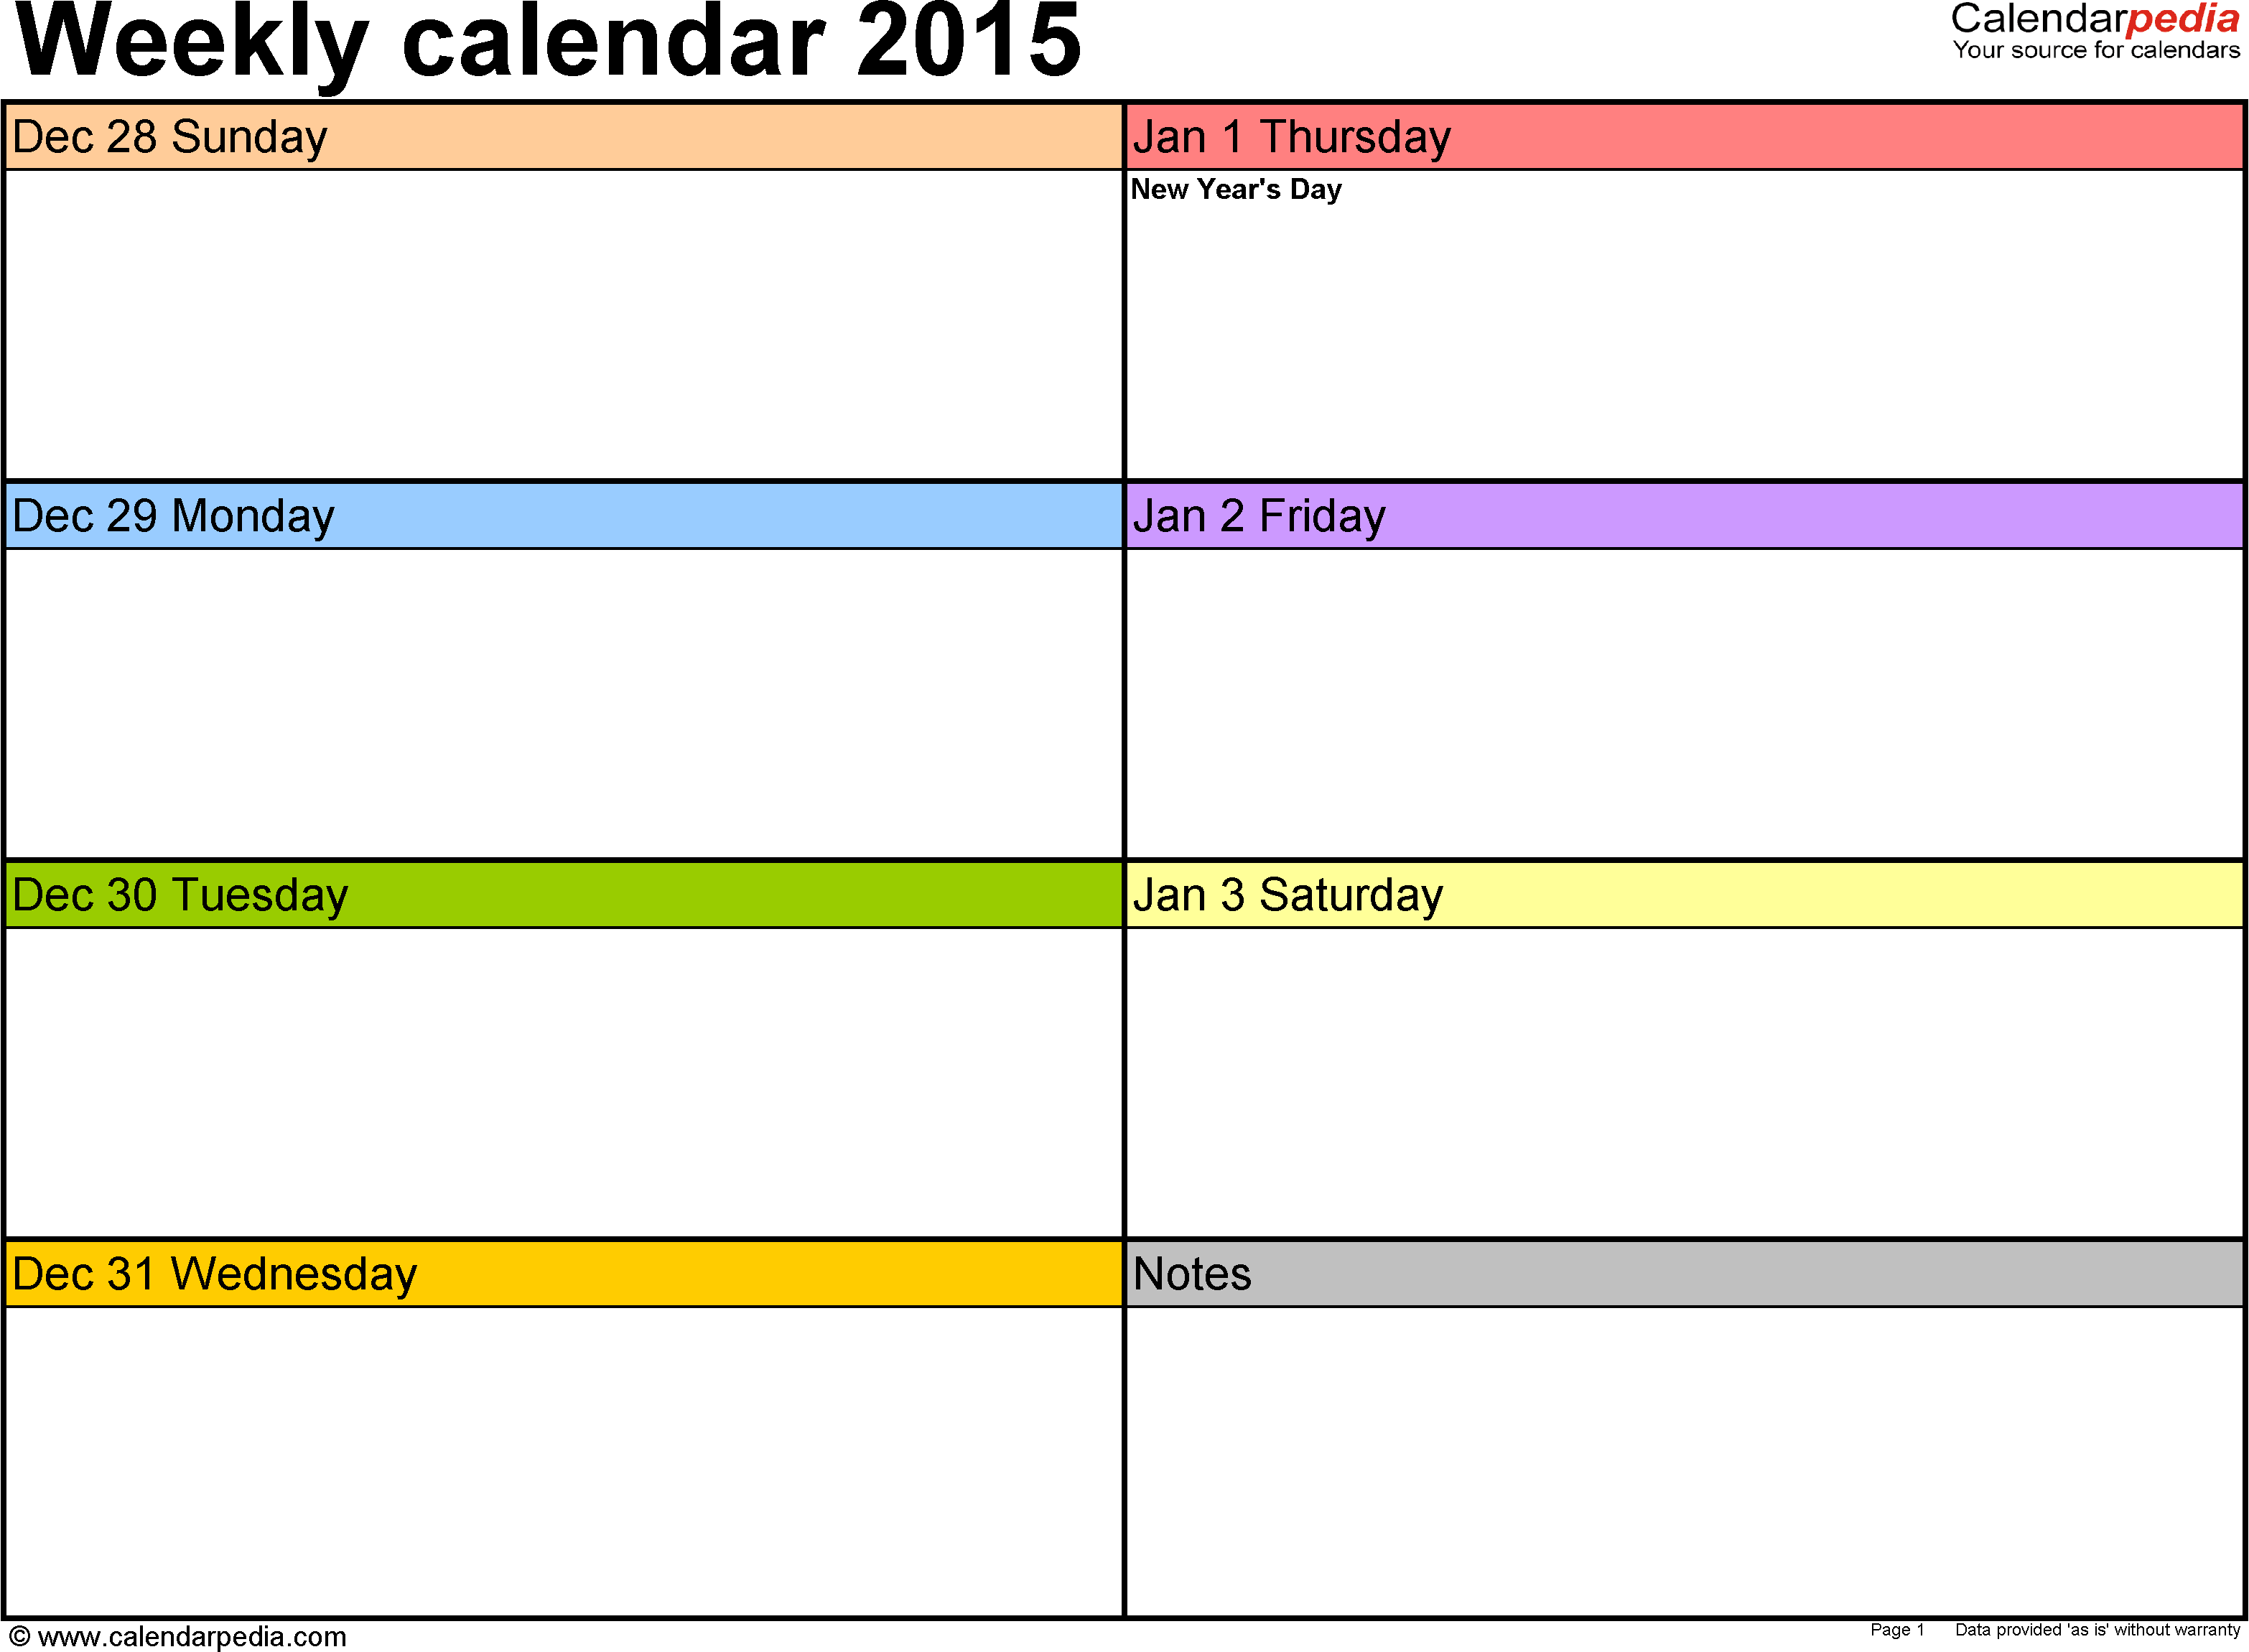 Daily Calendar Page 2015 Clipart.